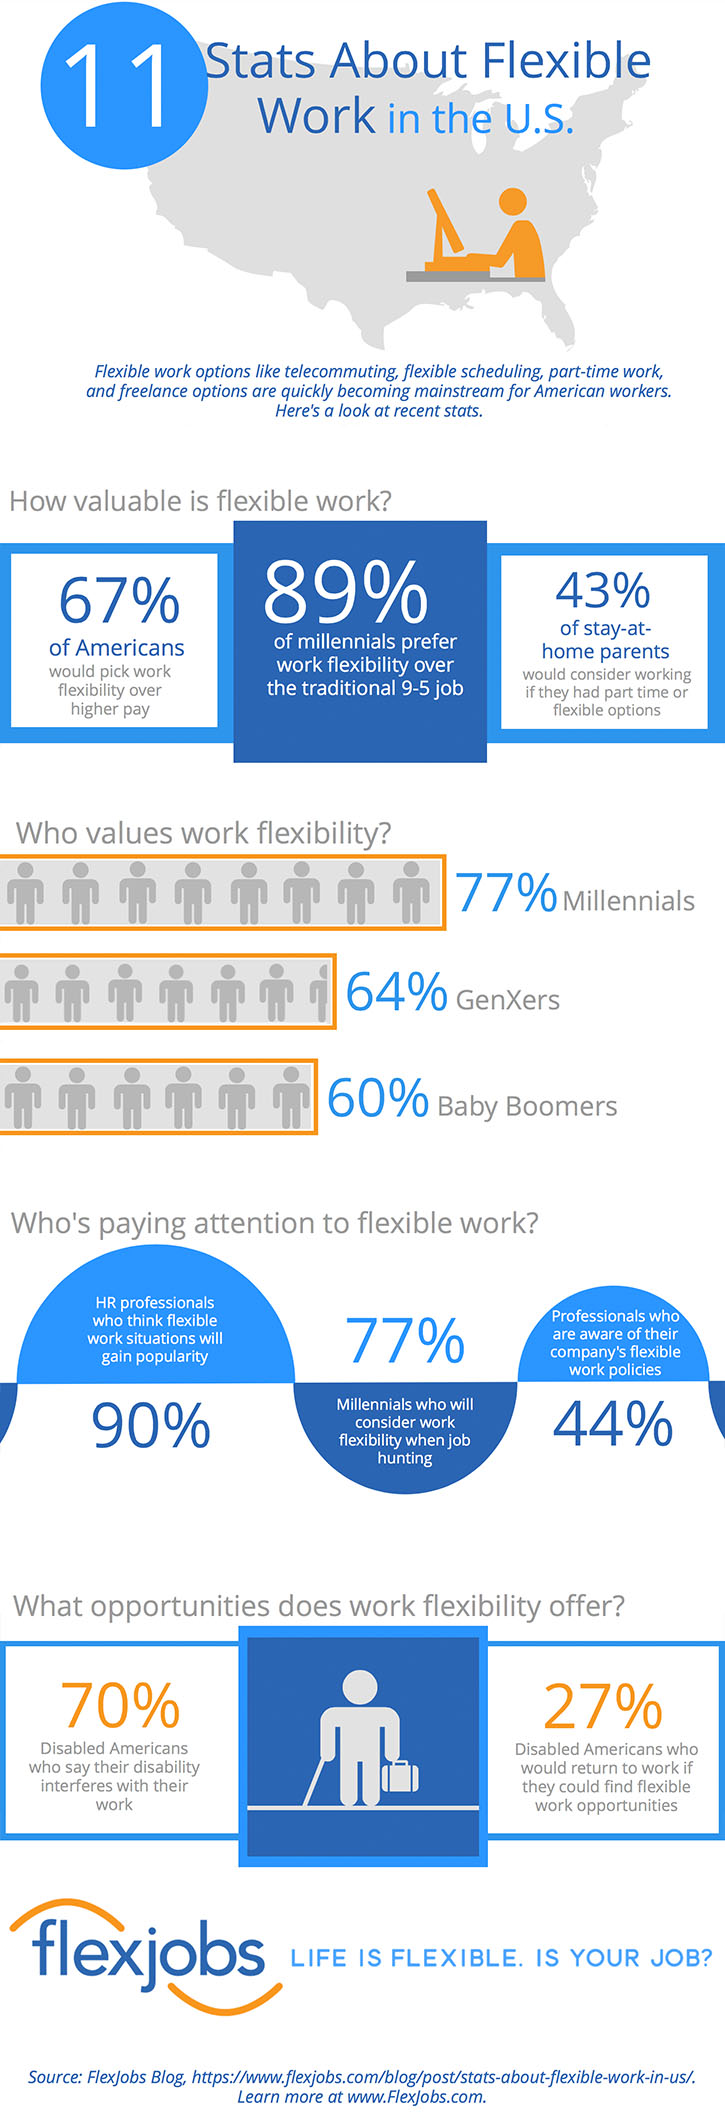 Stats About Flexible Work infographic